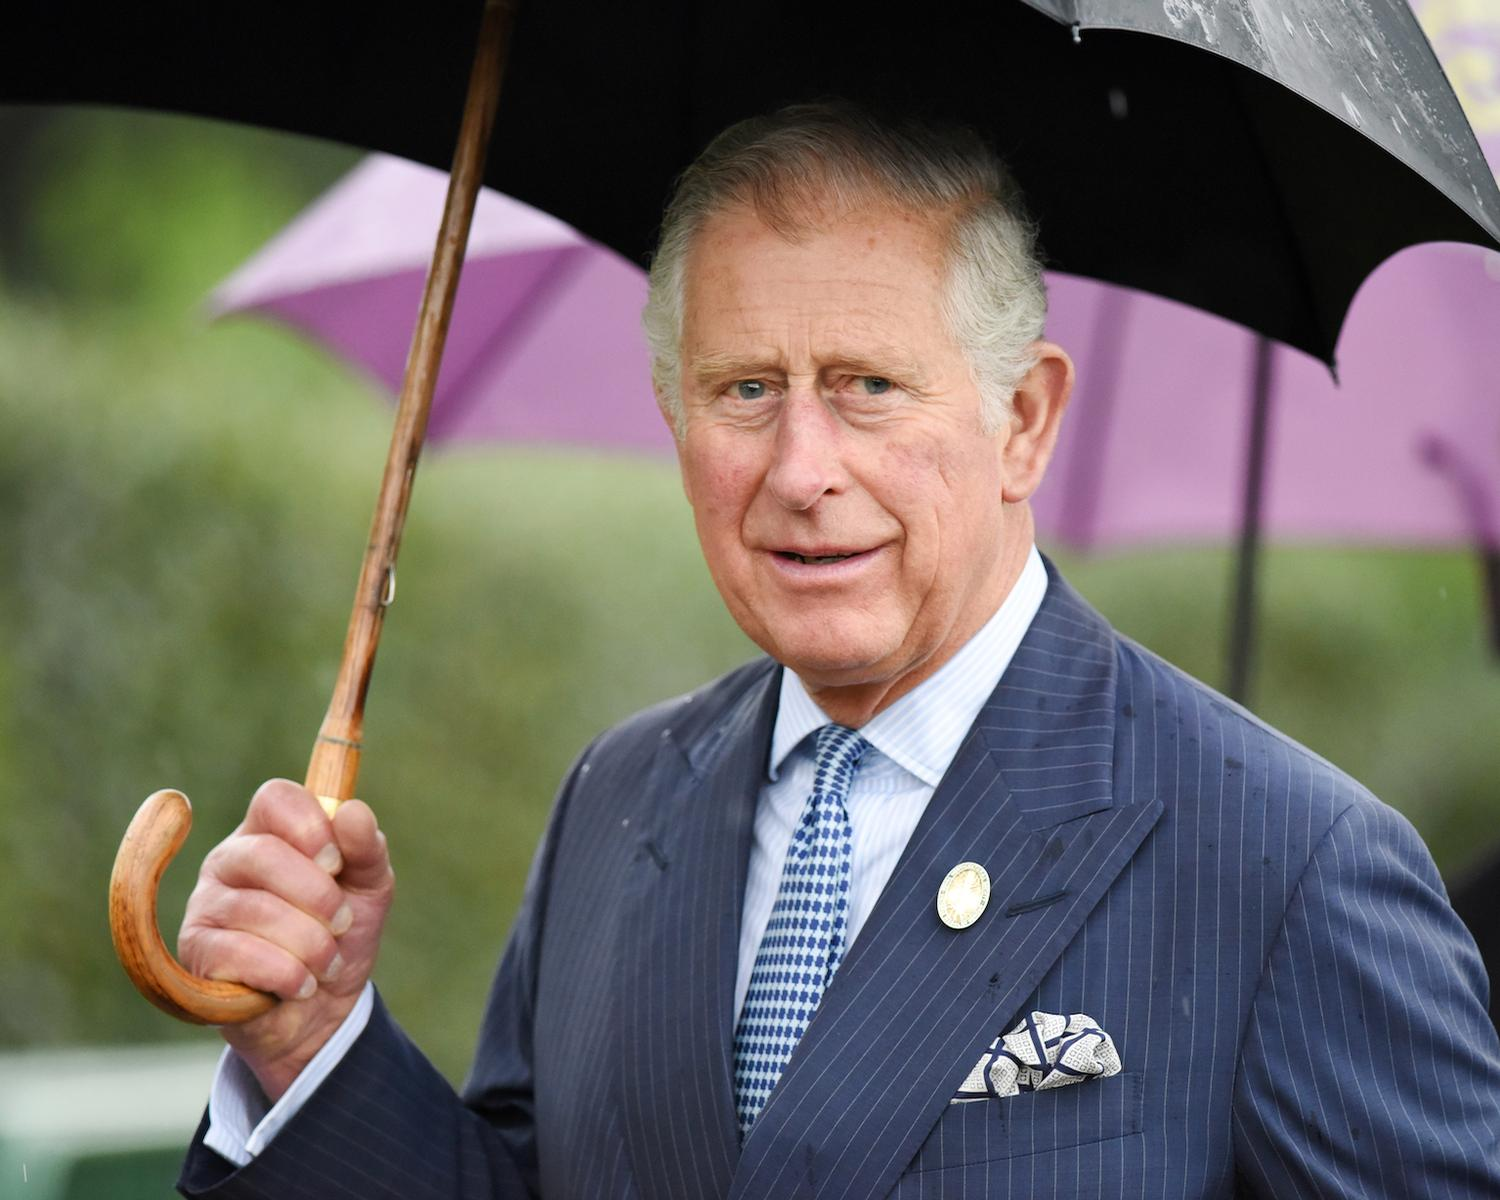 Prince Charles says yoga can contribute to 'health and healing' / Shutterstock/765355024